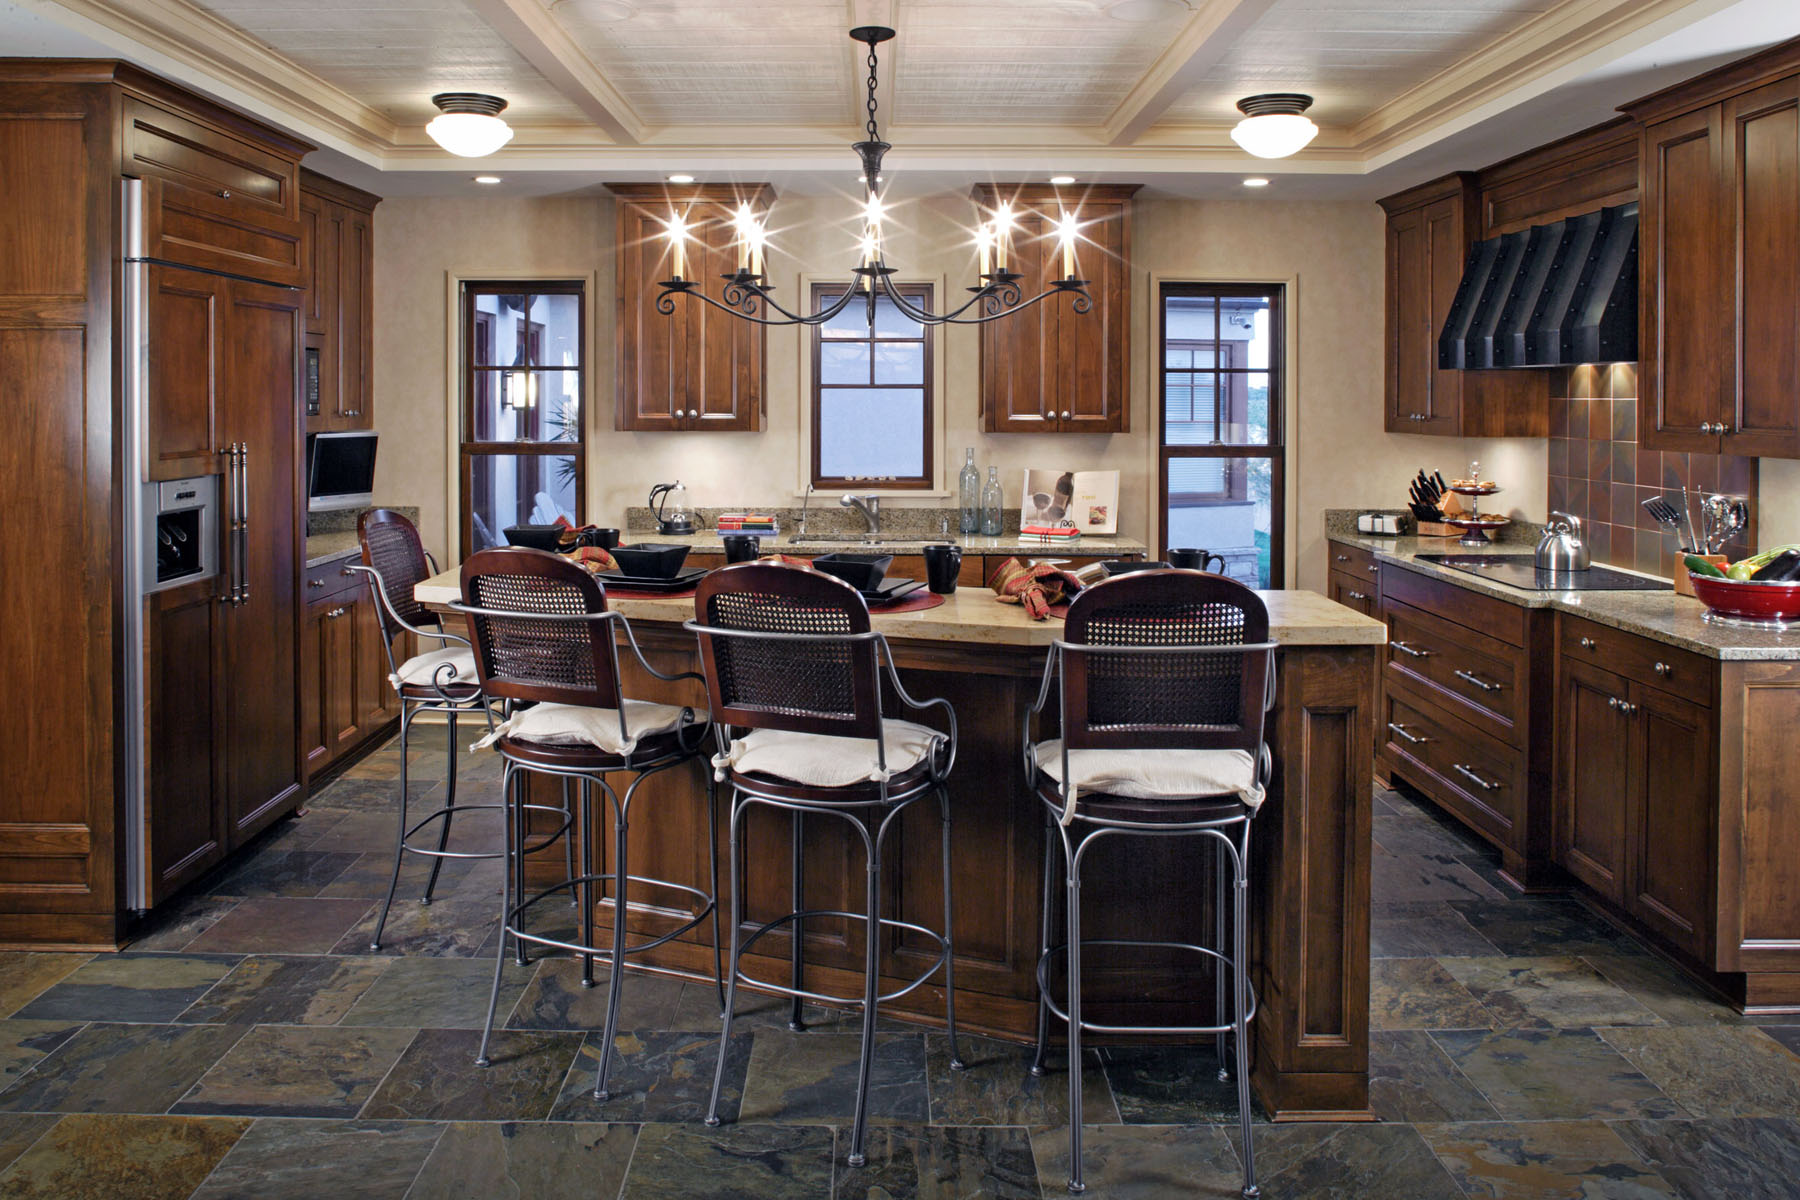 Kitchen-Island-Seating.jpg